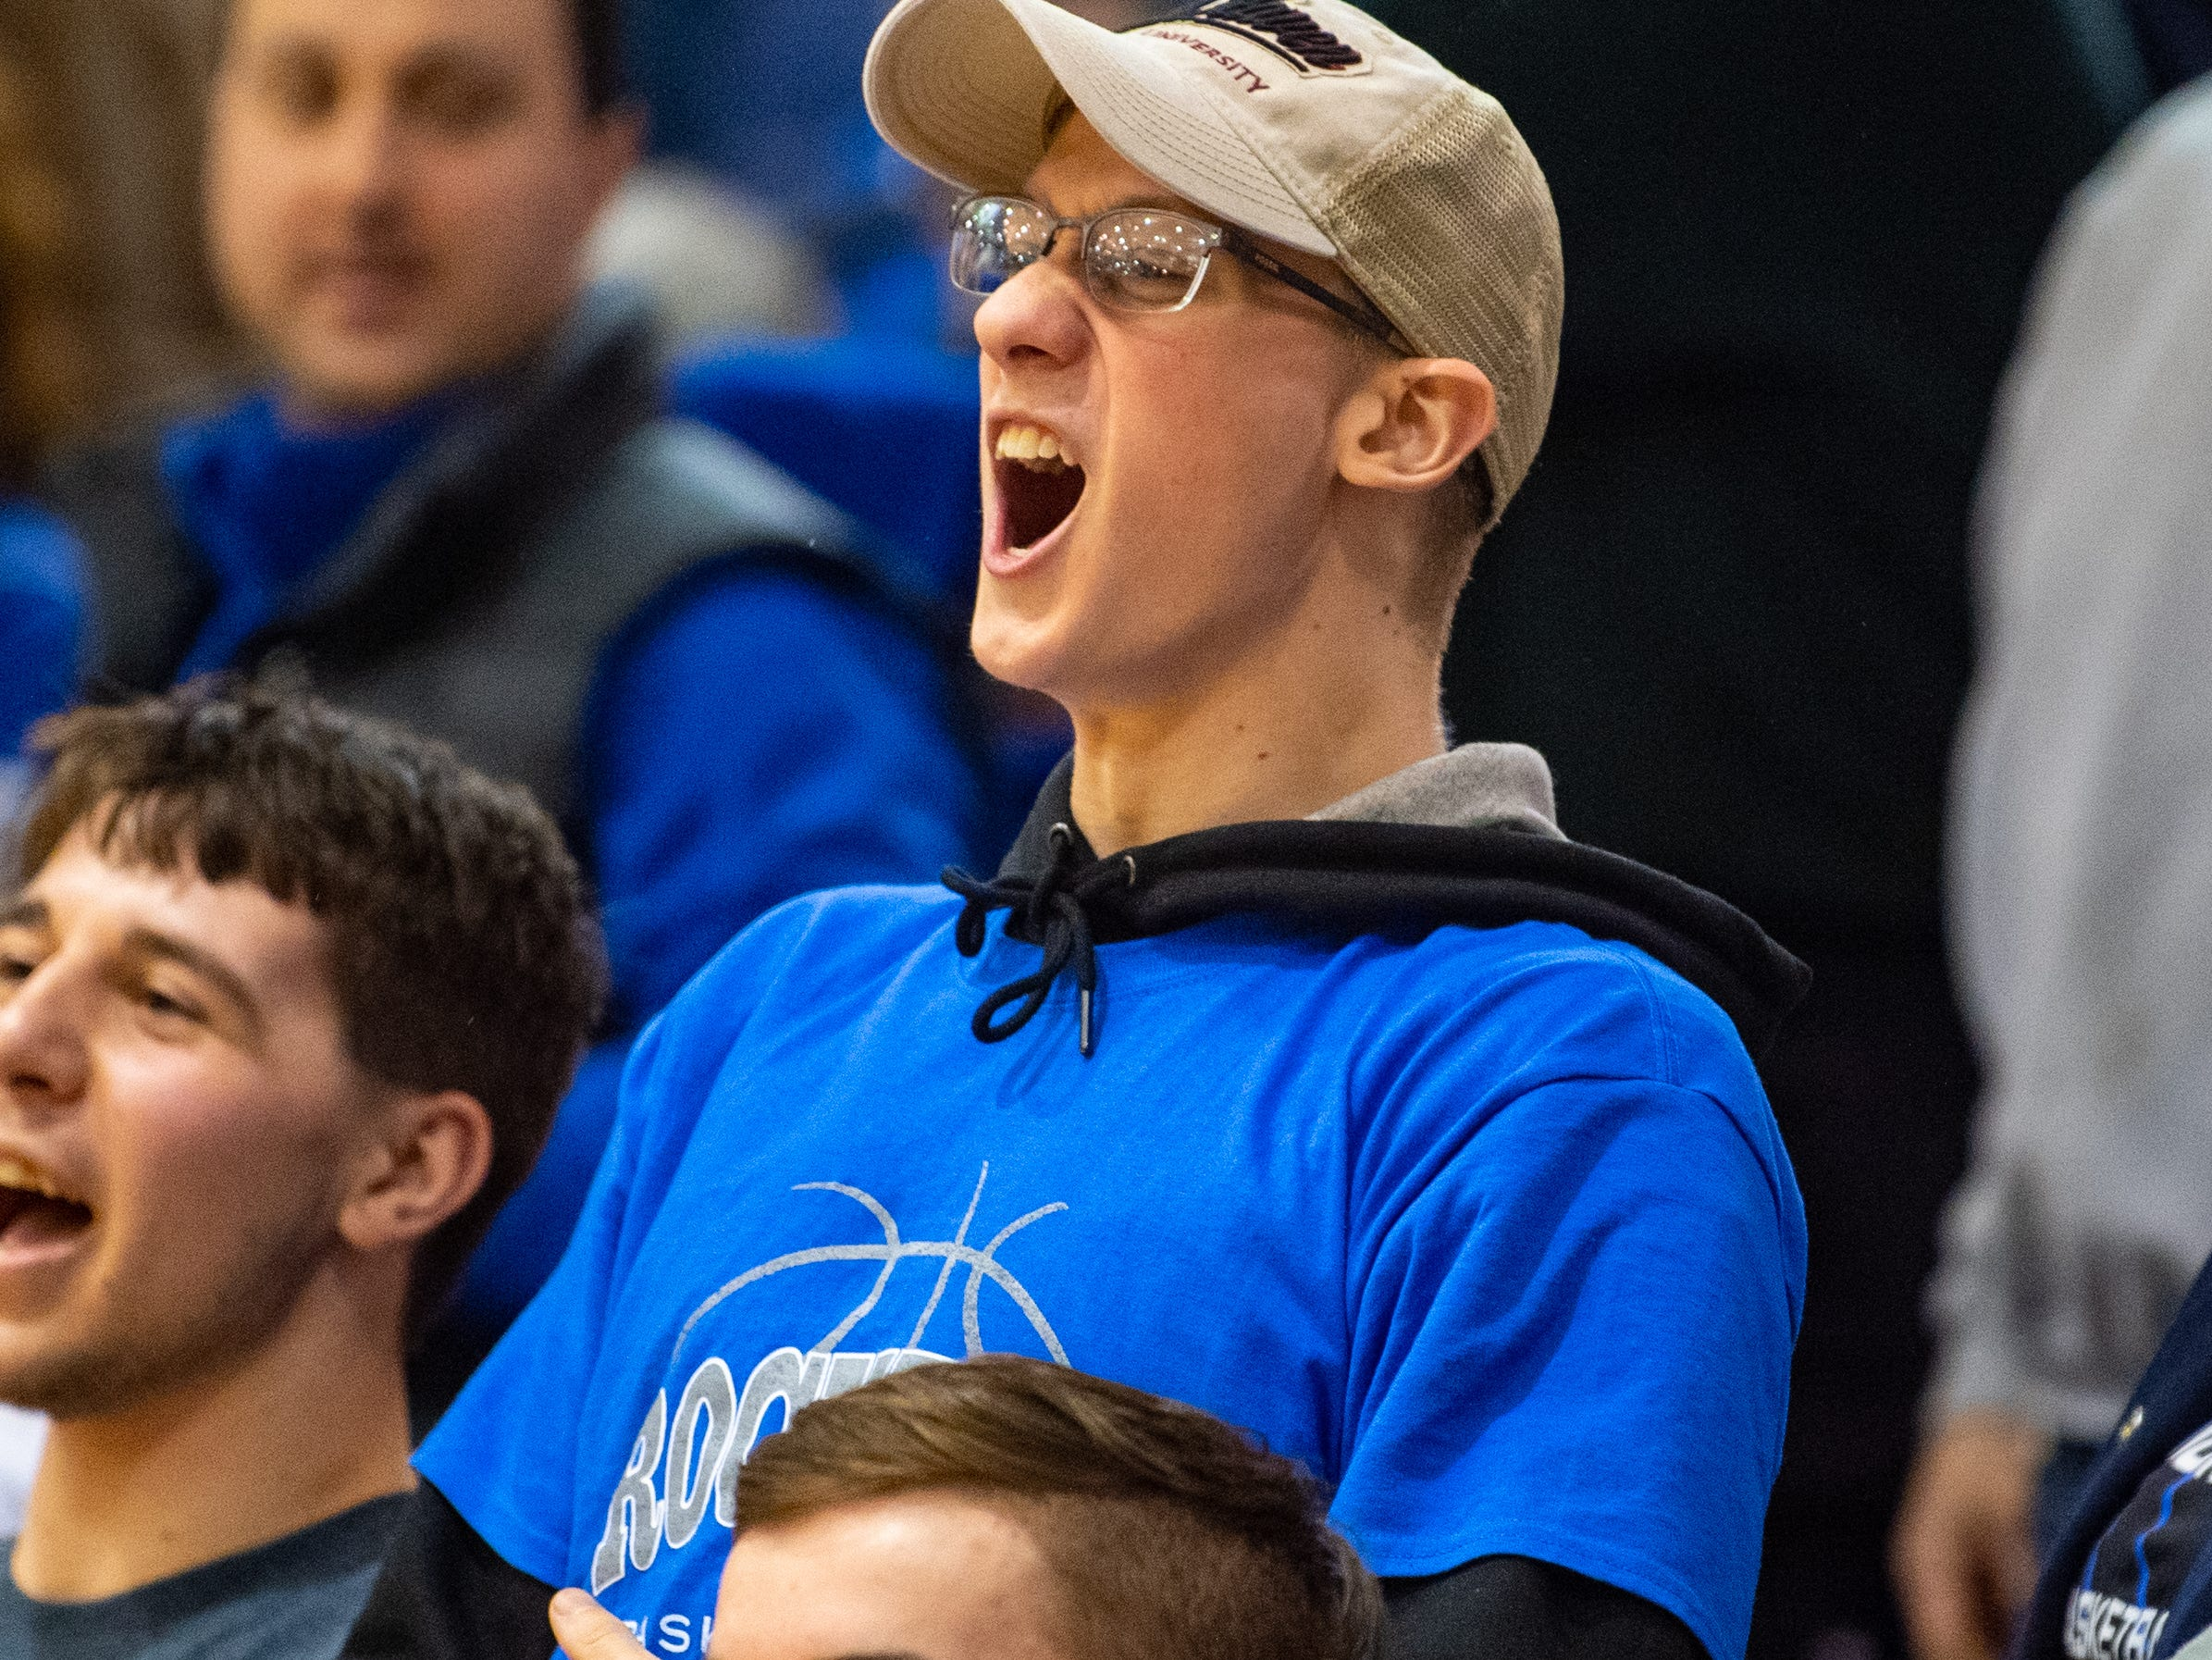 Spring Grove's student section cheers after a hard fought win over Kennard-Dale, February 8, 2019 at Dallastown Area High School. The Rockets defeated the Rams 47 to 38.